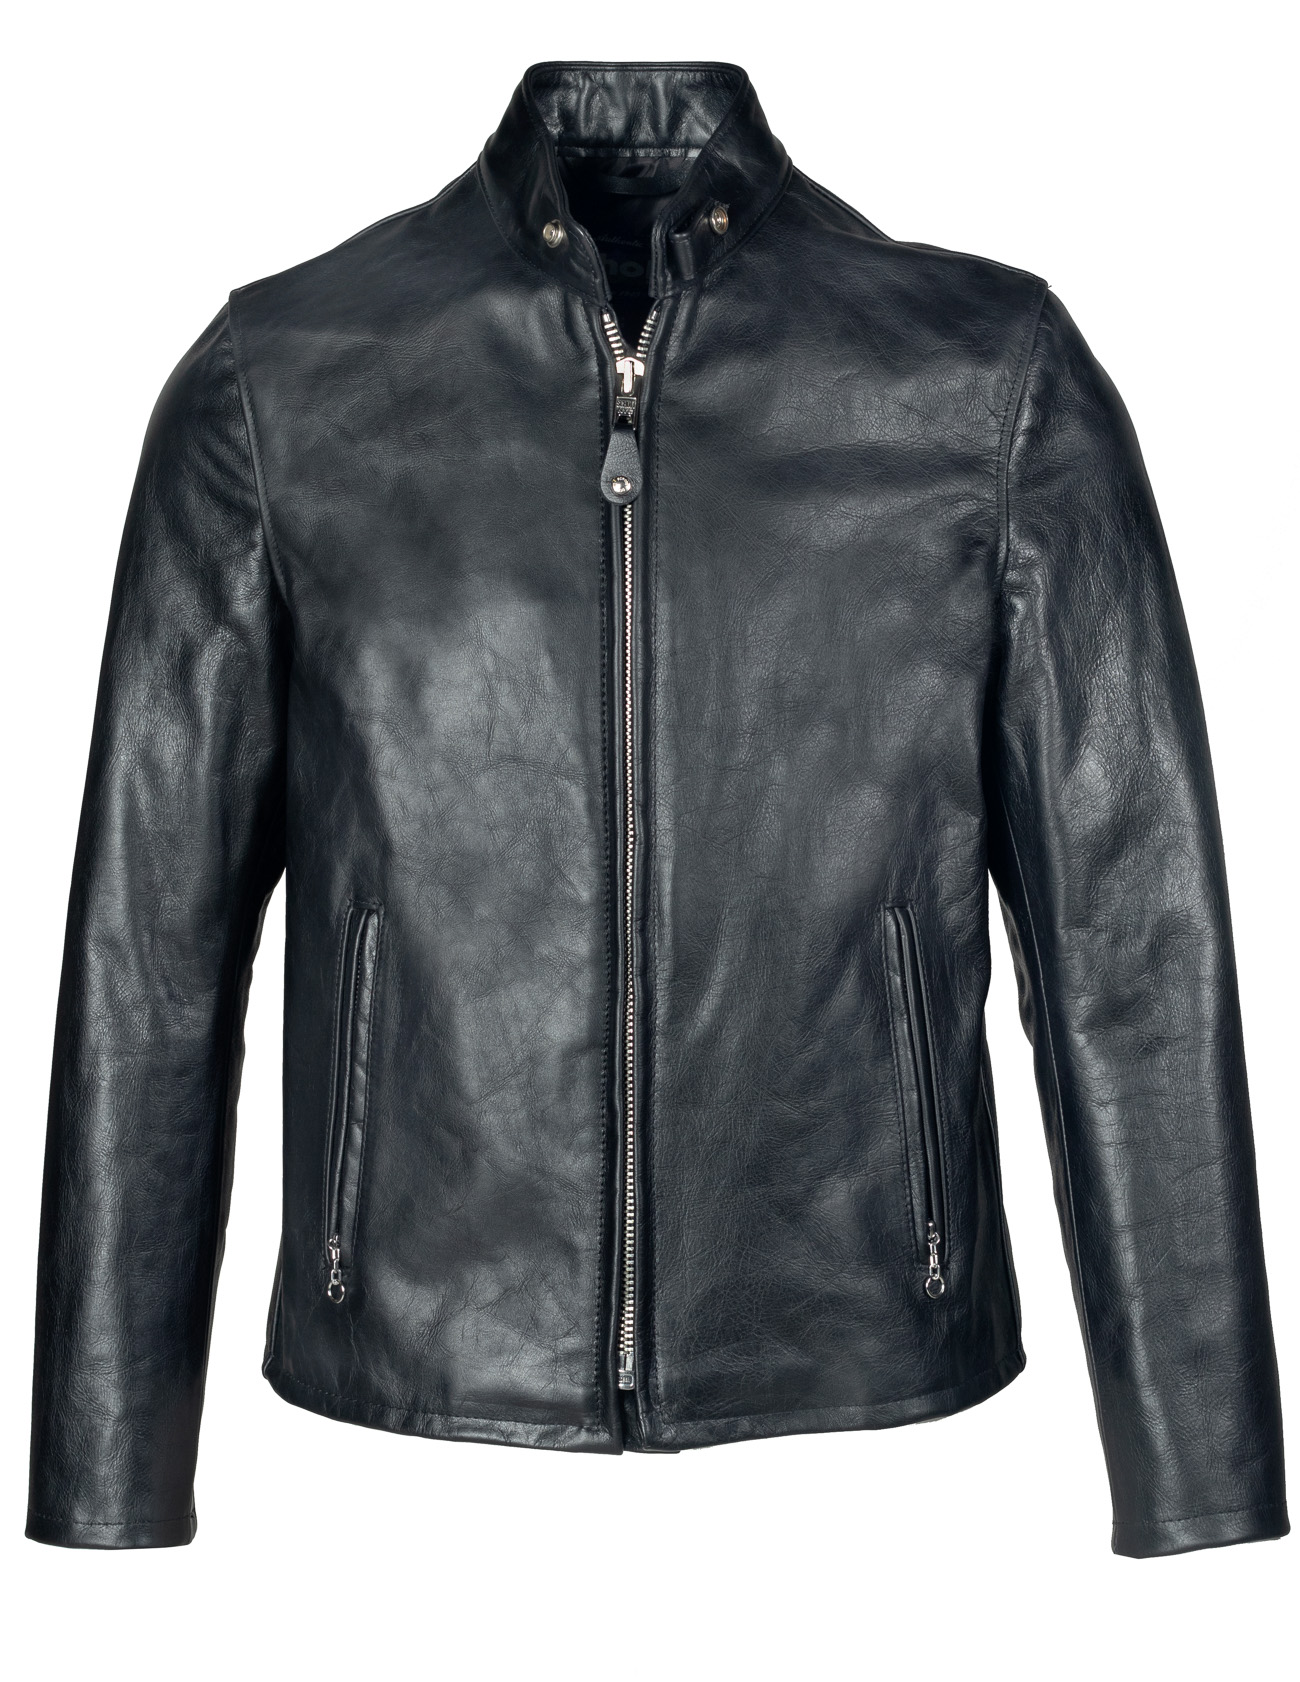 Schott N.Y.C. 654 Cowhide Casual Racer Leather Jacket